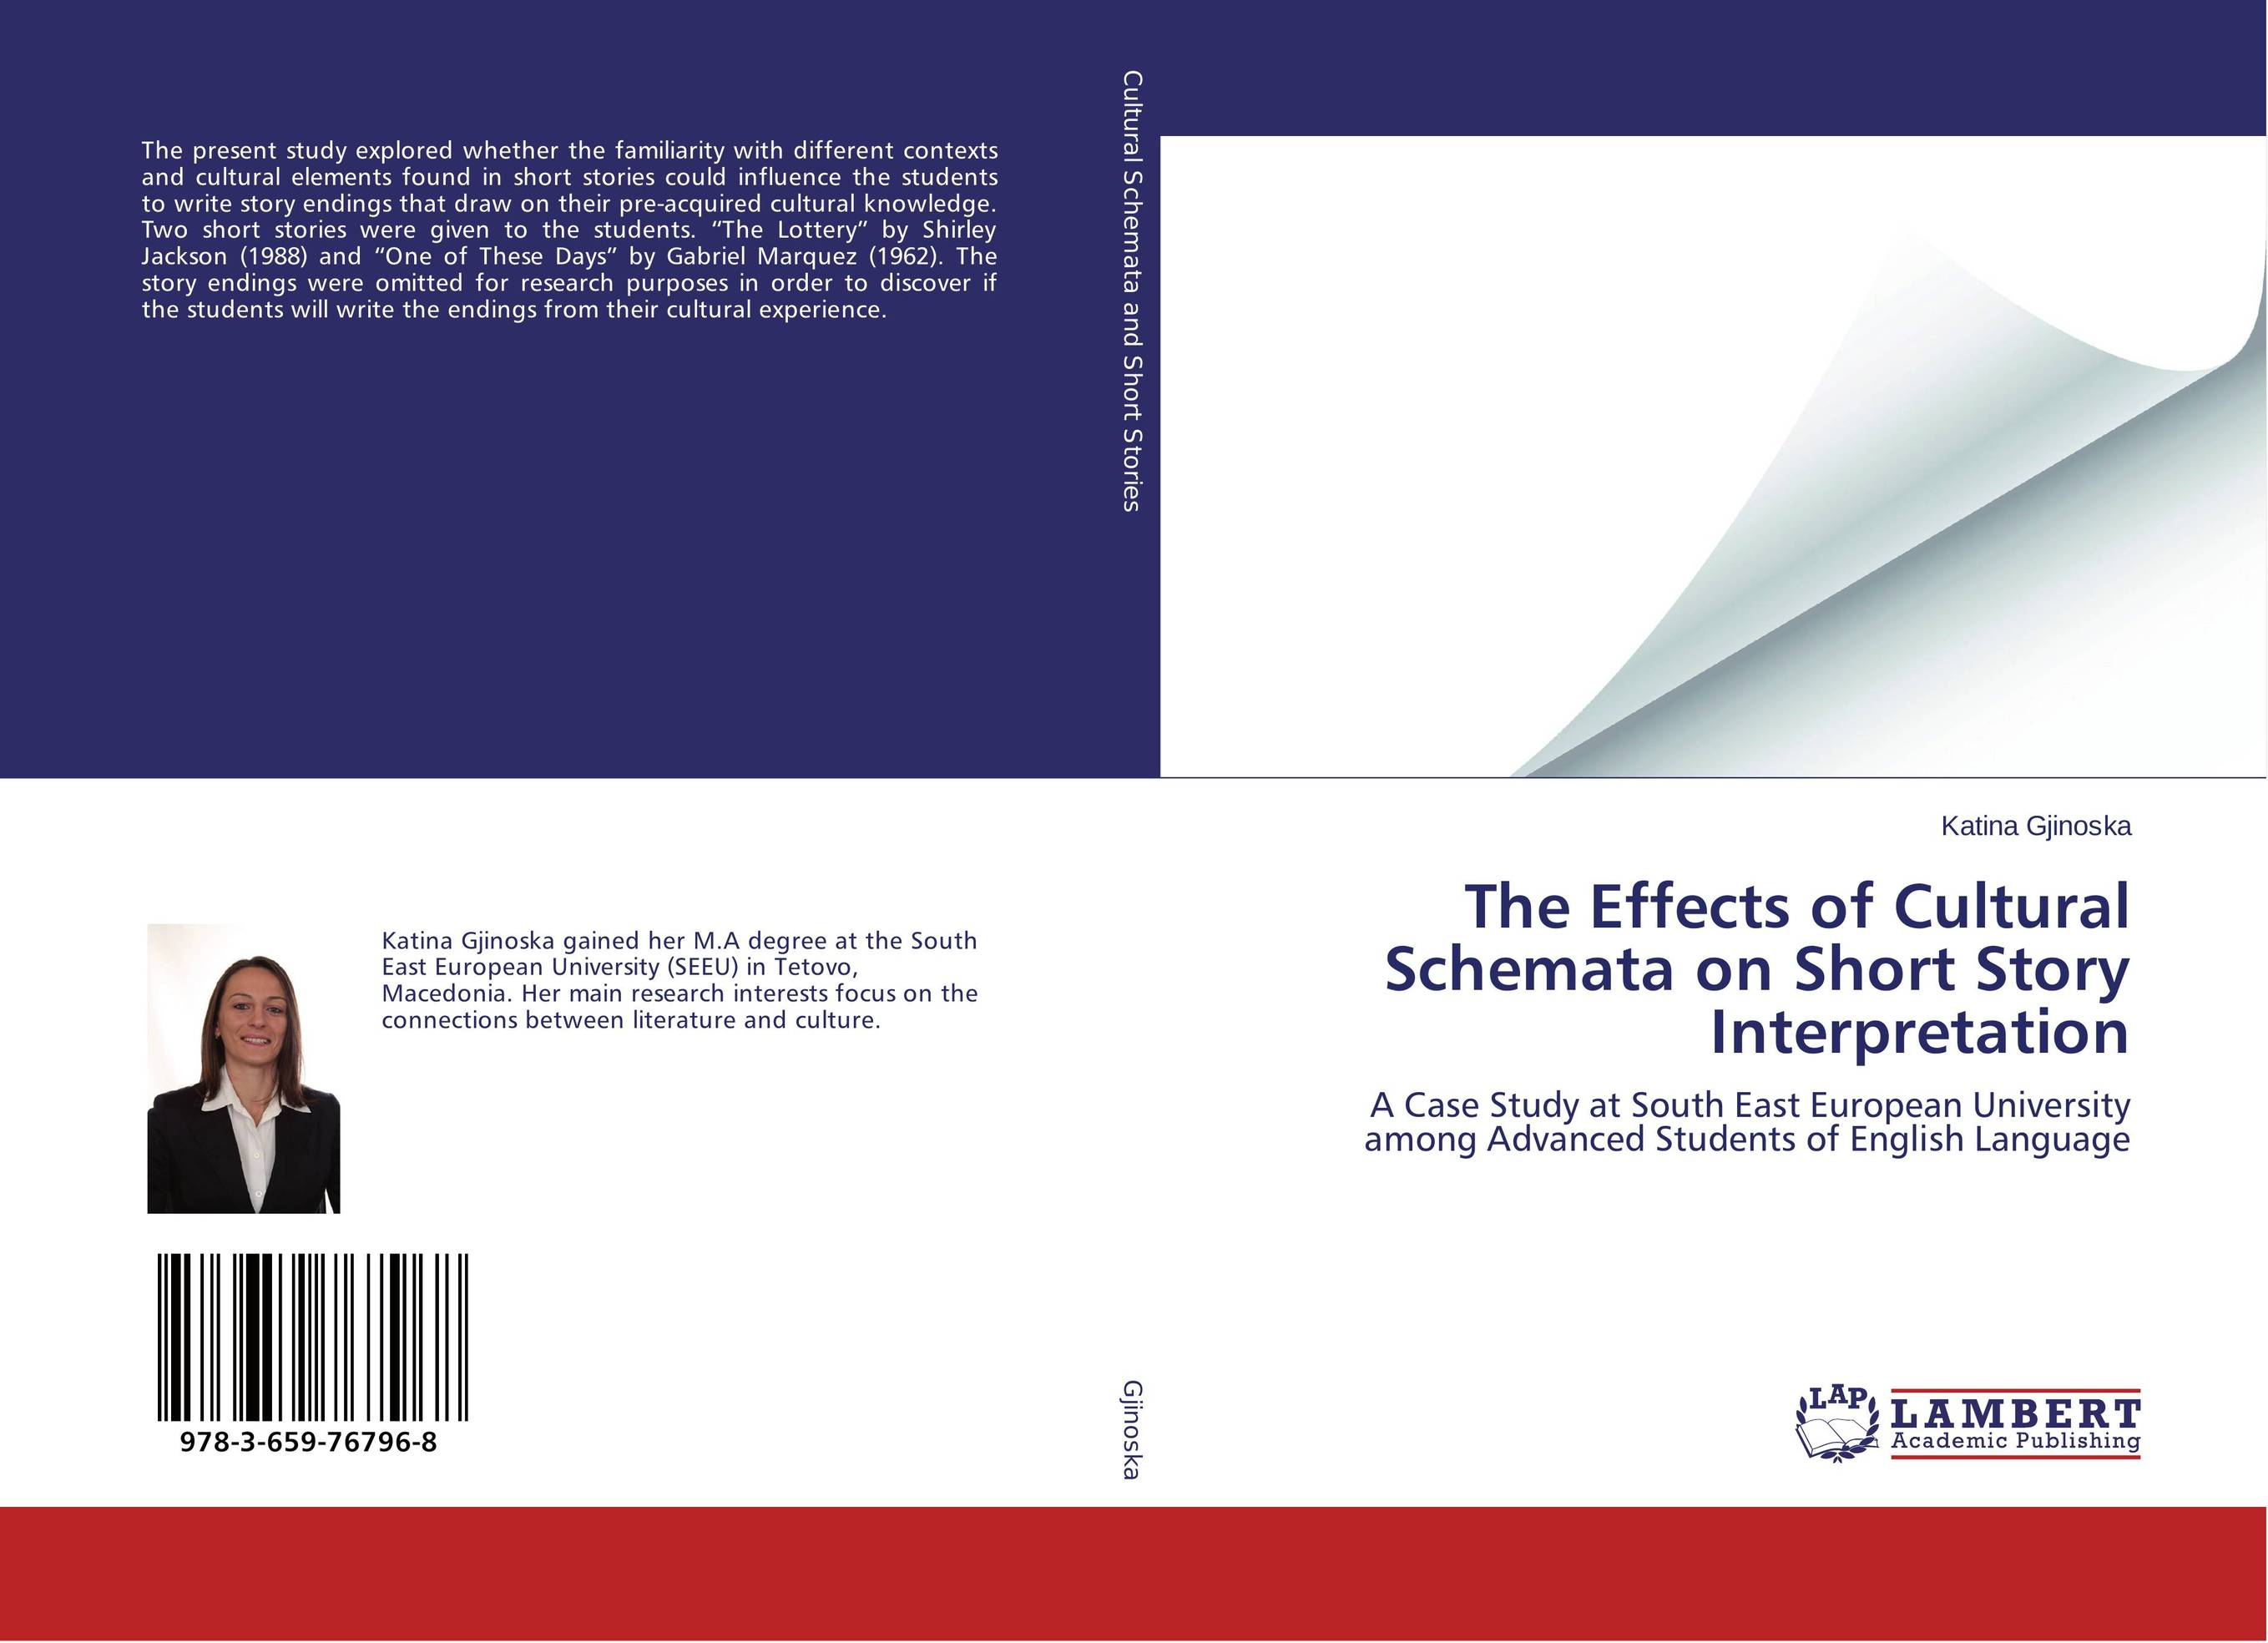 The Effects of Cultural Schemata on Short Story Interpretation